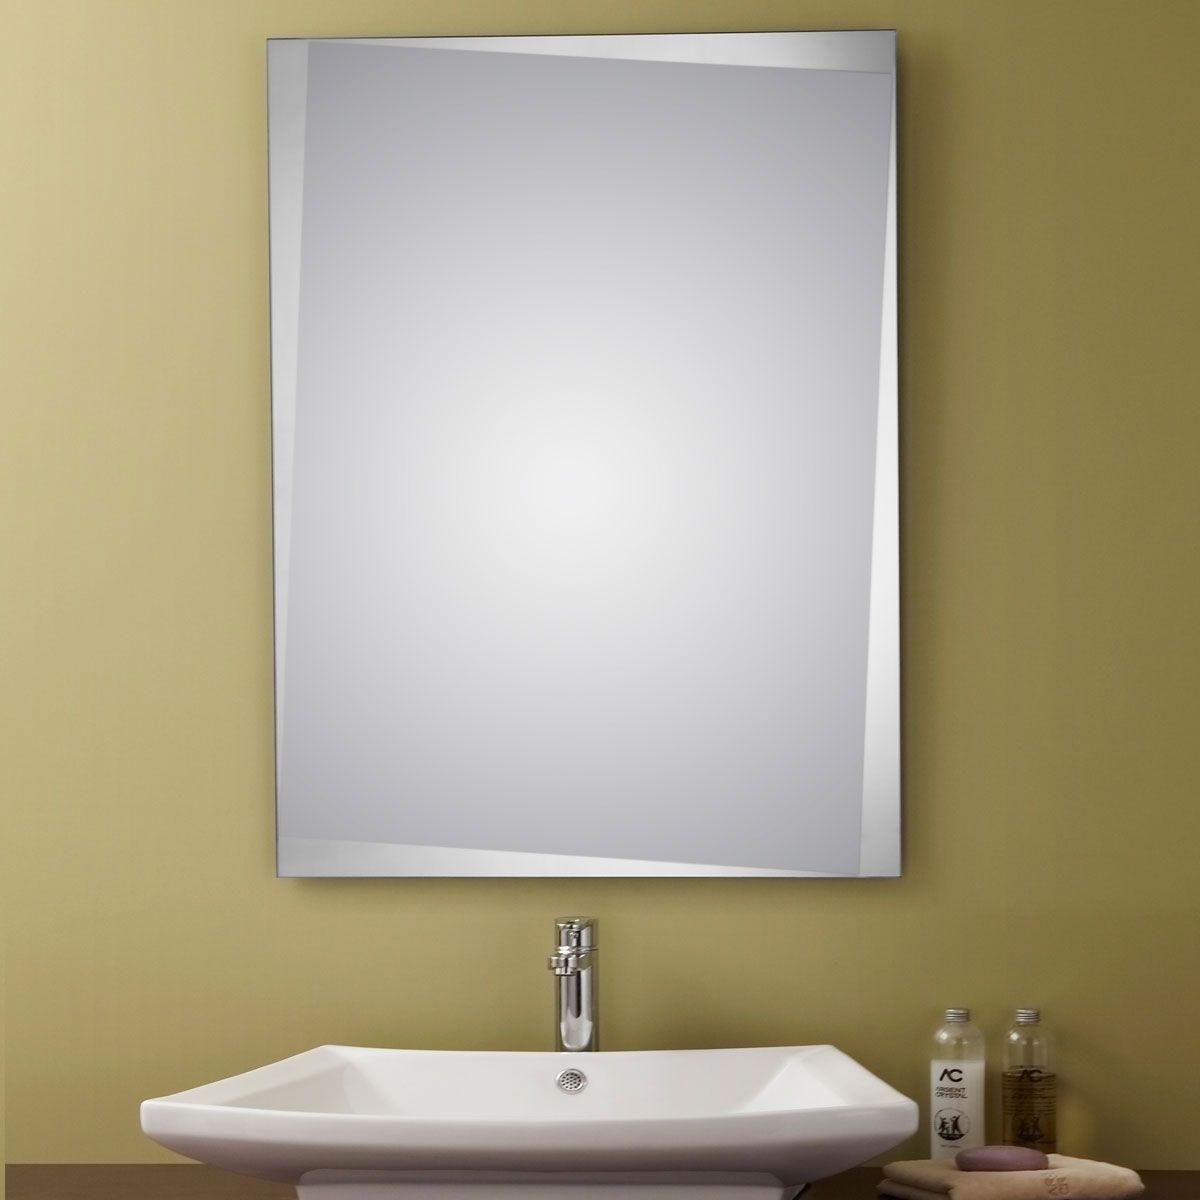 24 x 32 In Unframed Bathroom Mirror - Reversible and Beveled Edge ...